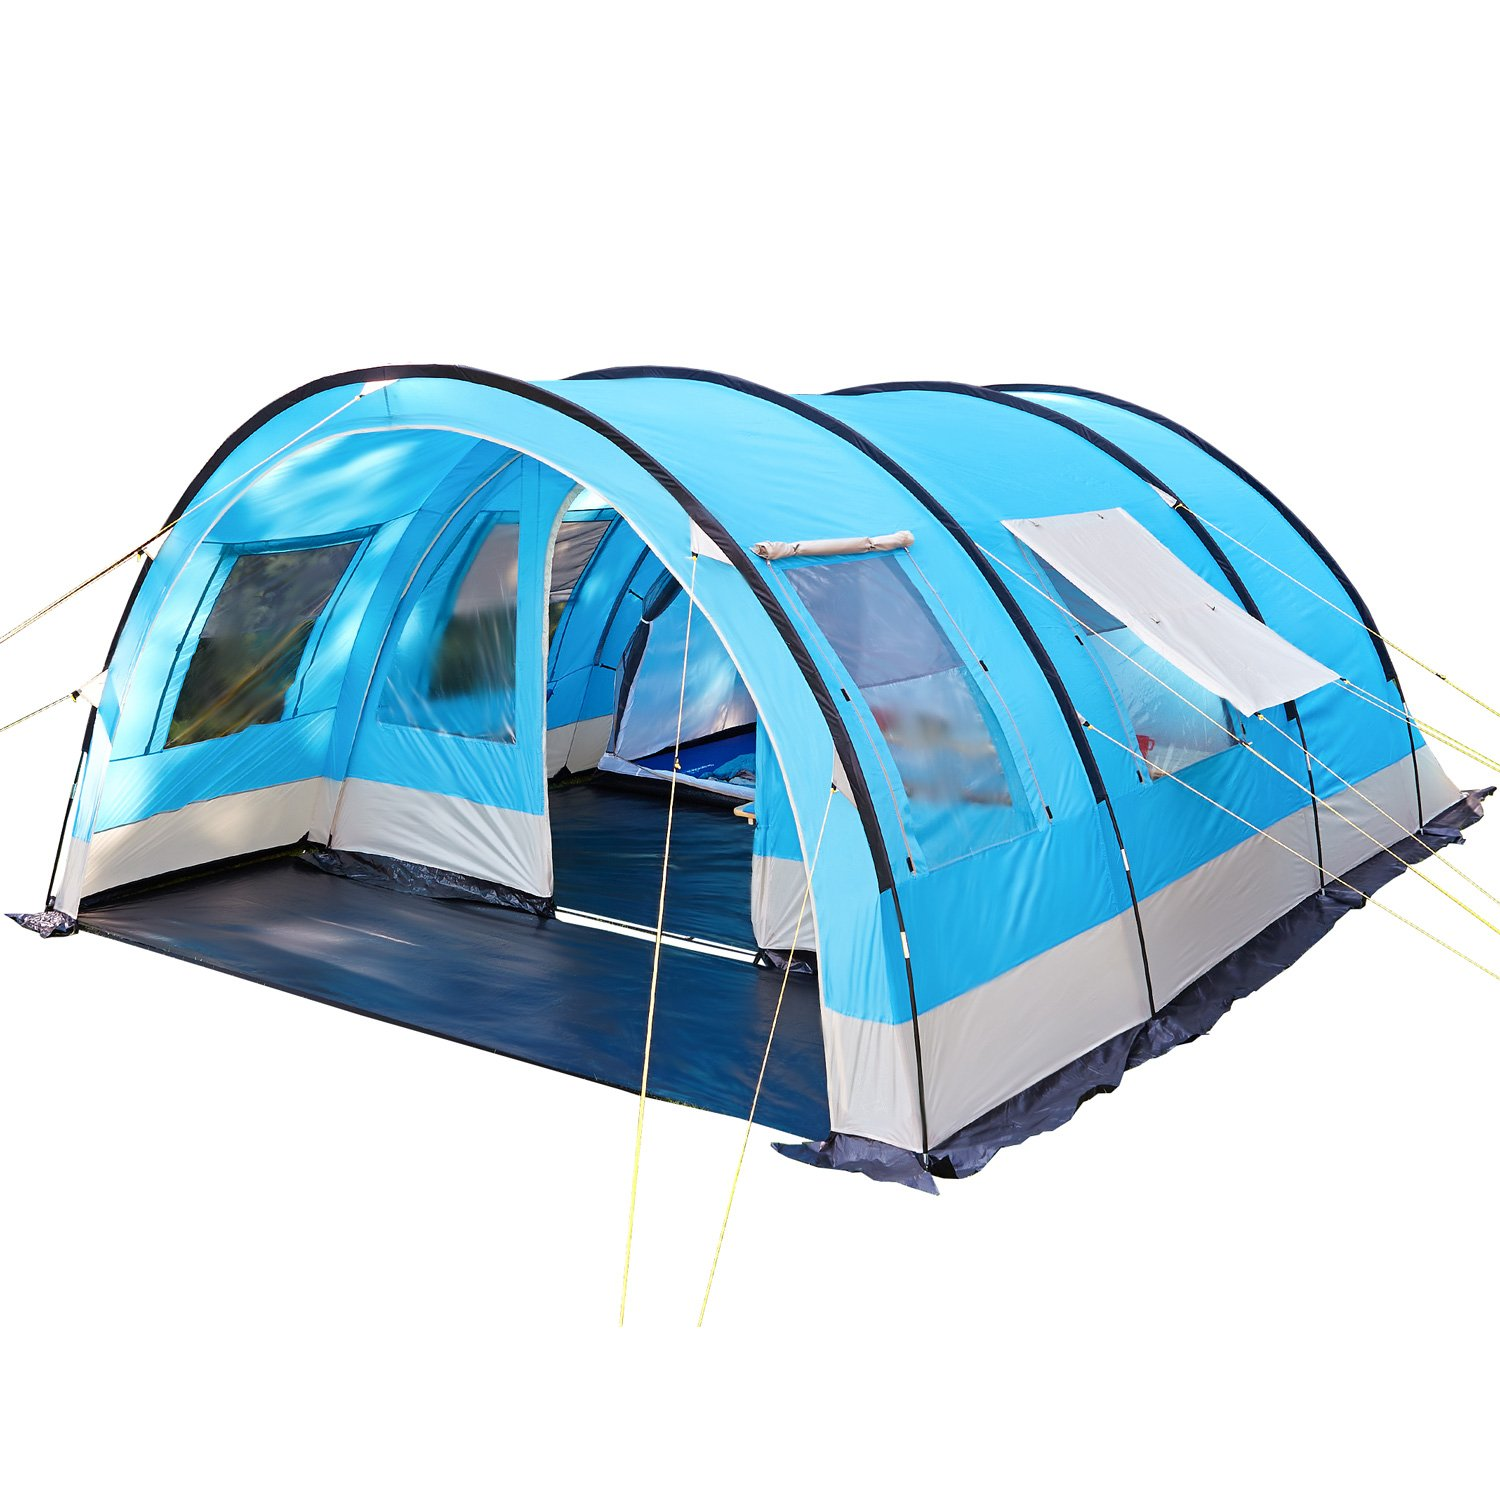 Skandika Kemi family Tunnel Tent with Moveable Front Wall, 2